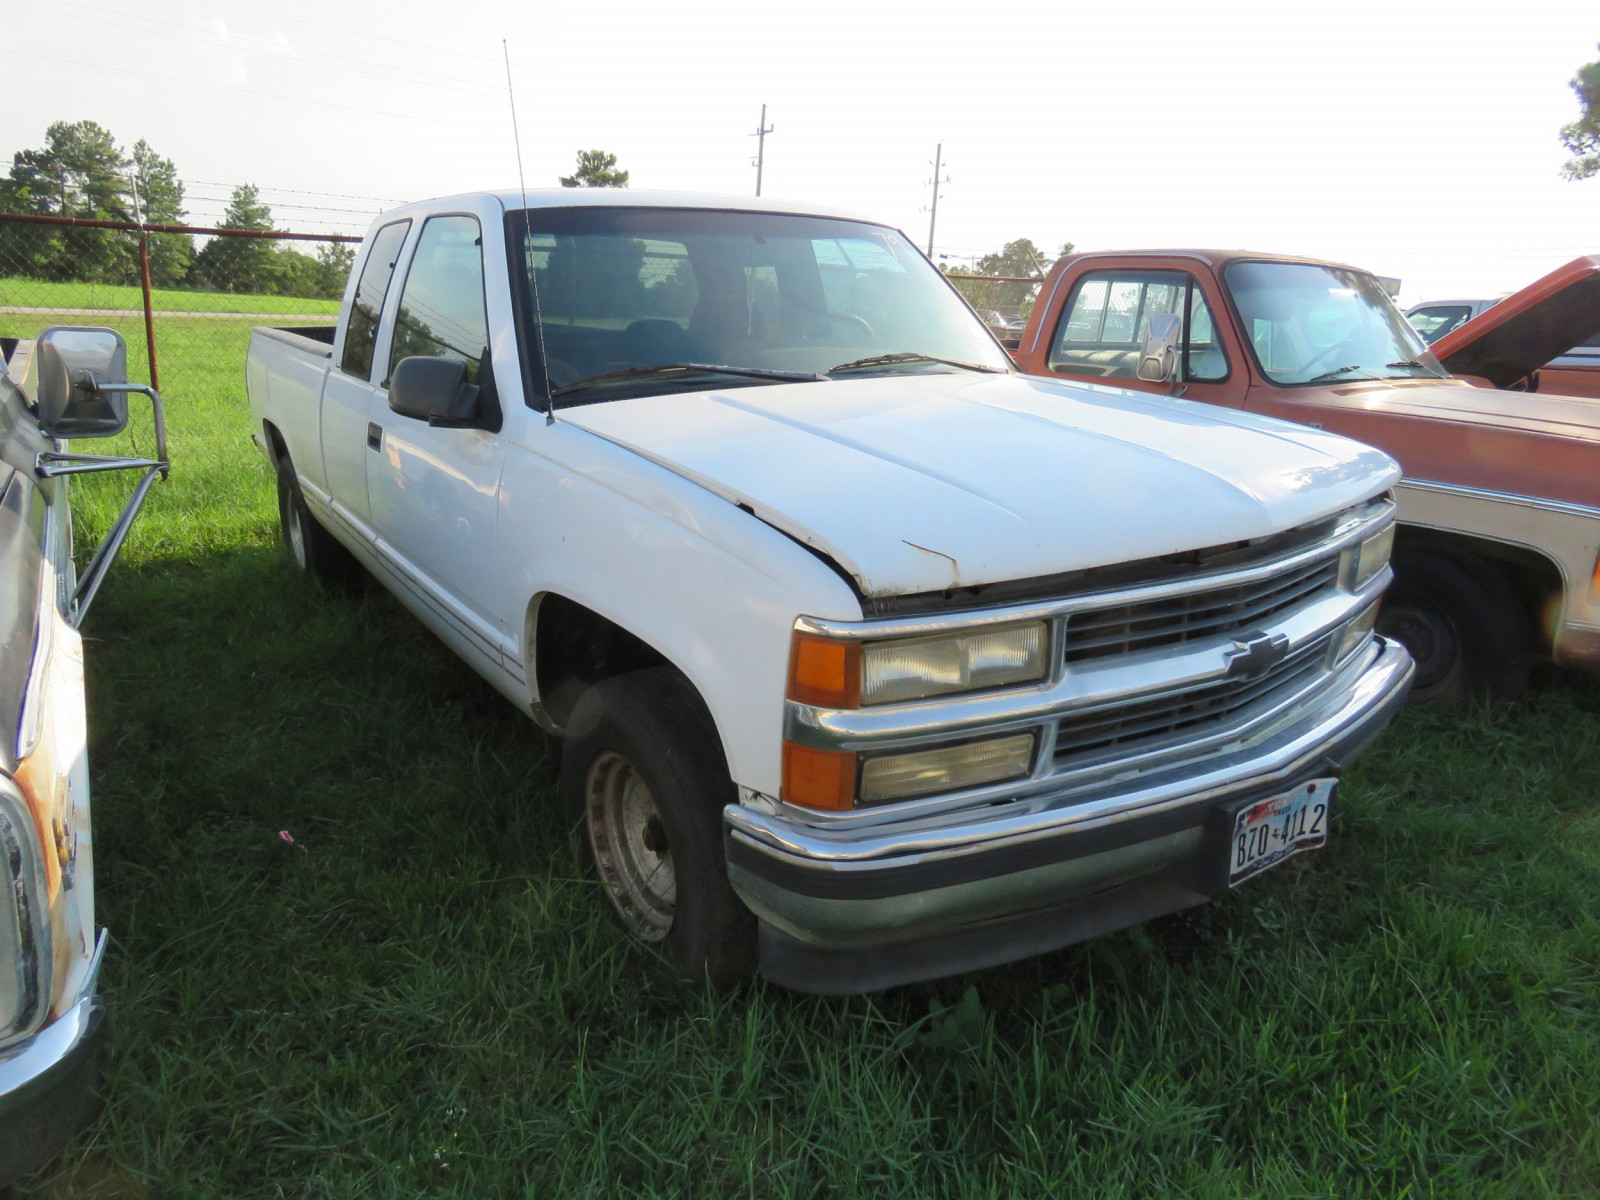 1996 Chevrolet Pickup - Image 2